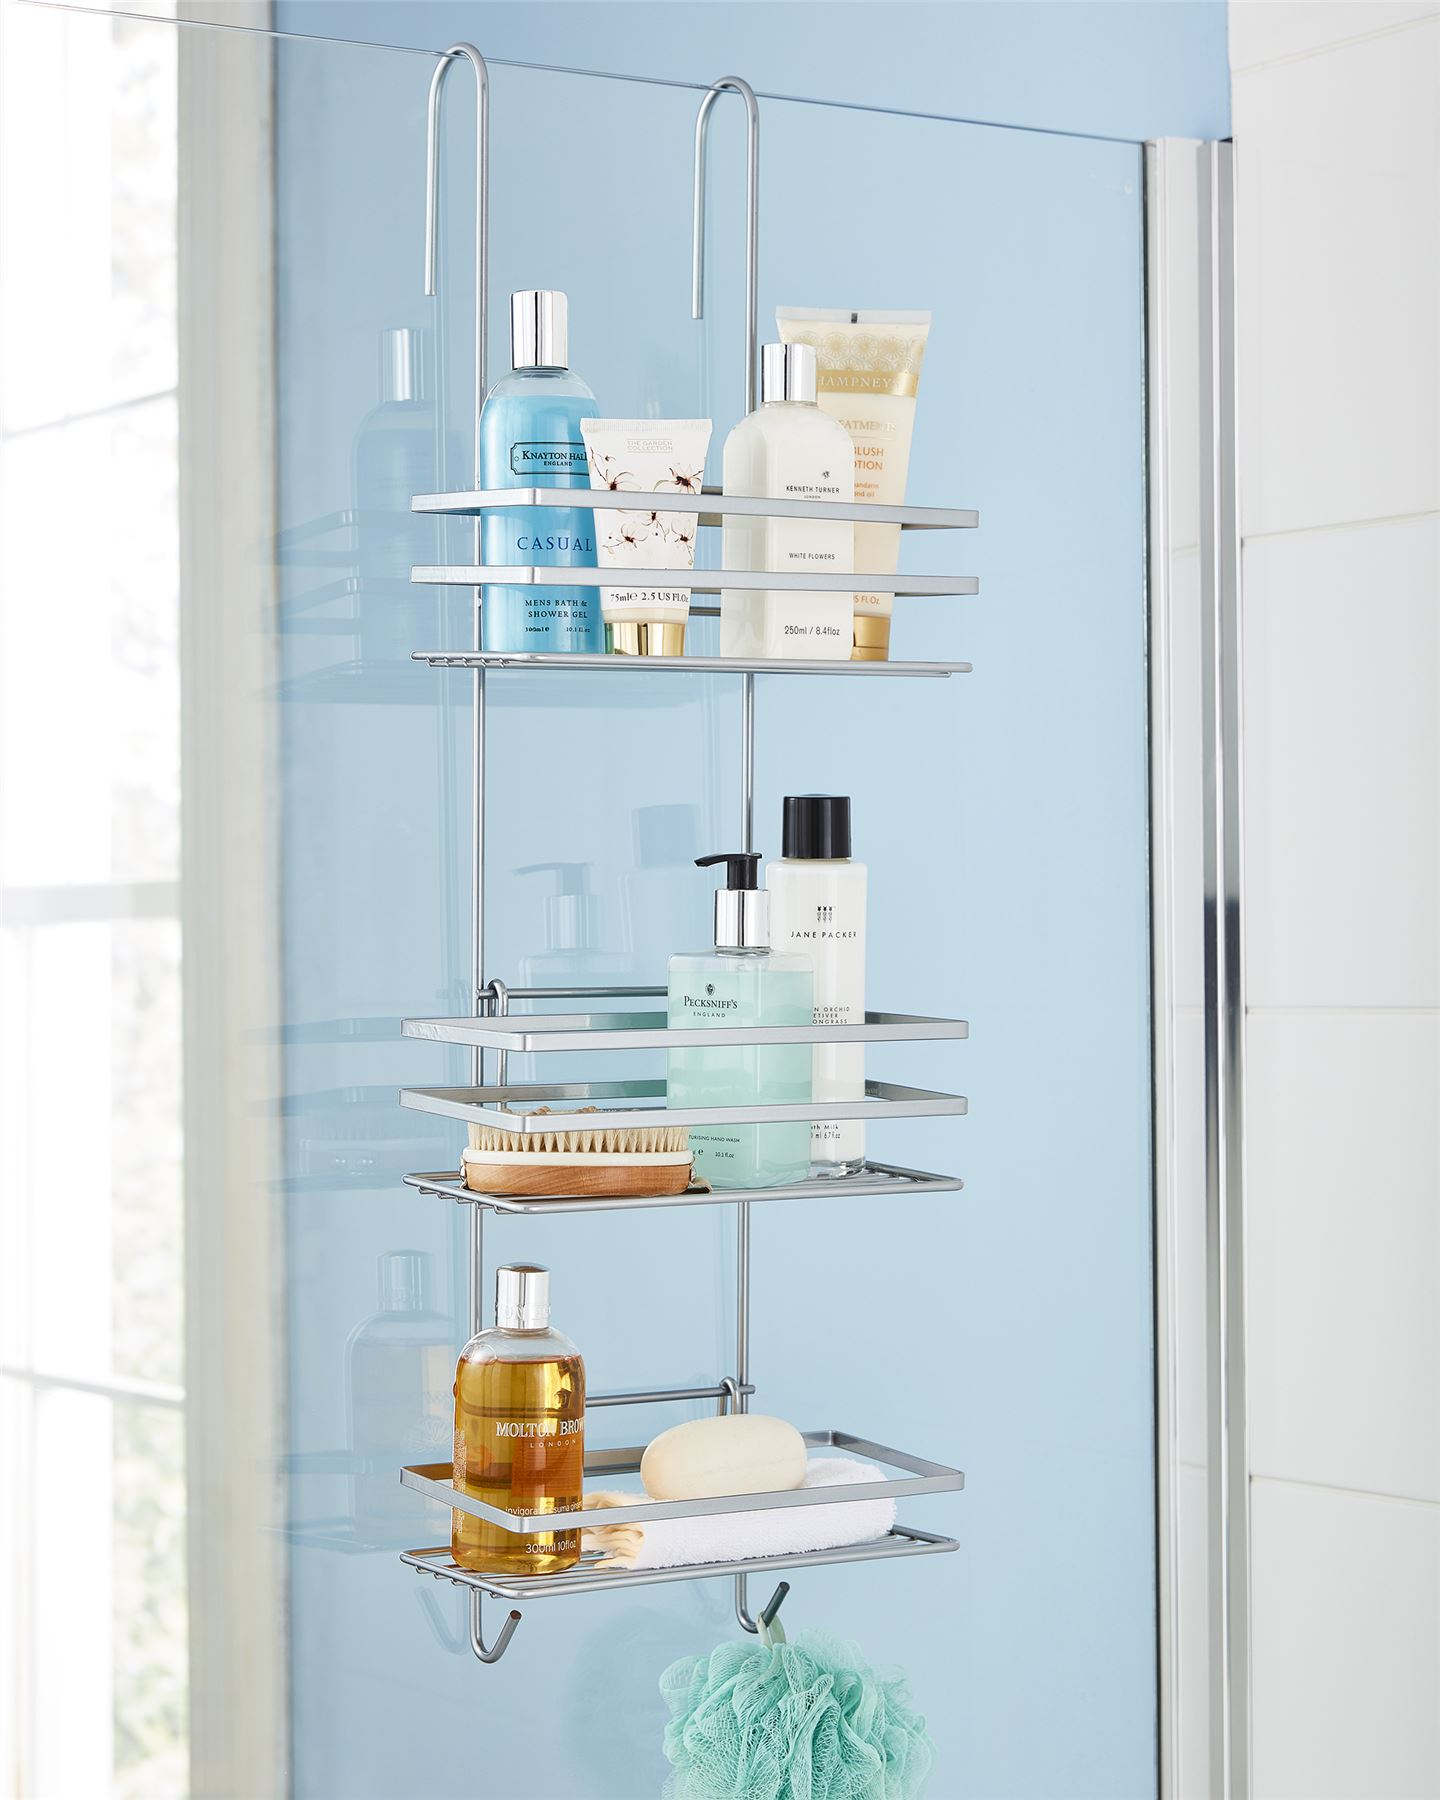 3 Tier Metallic Hanging Shower Caddy Bathroom Storage Shelf ...